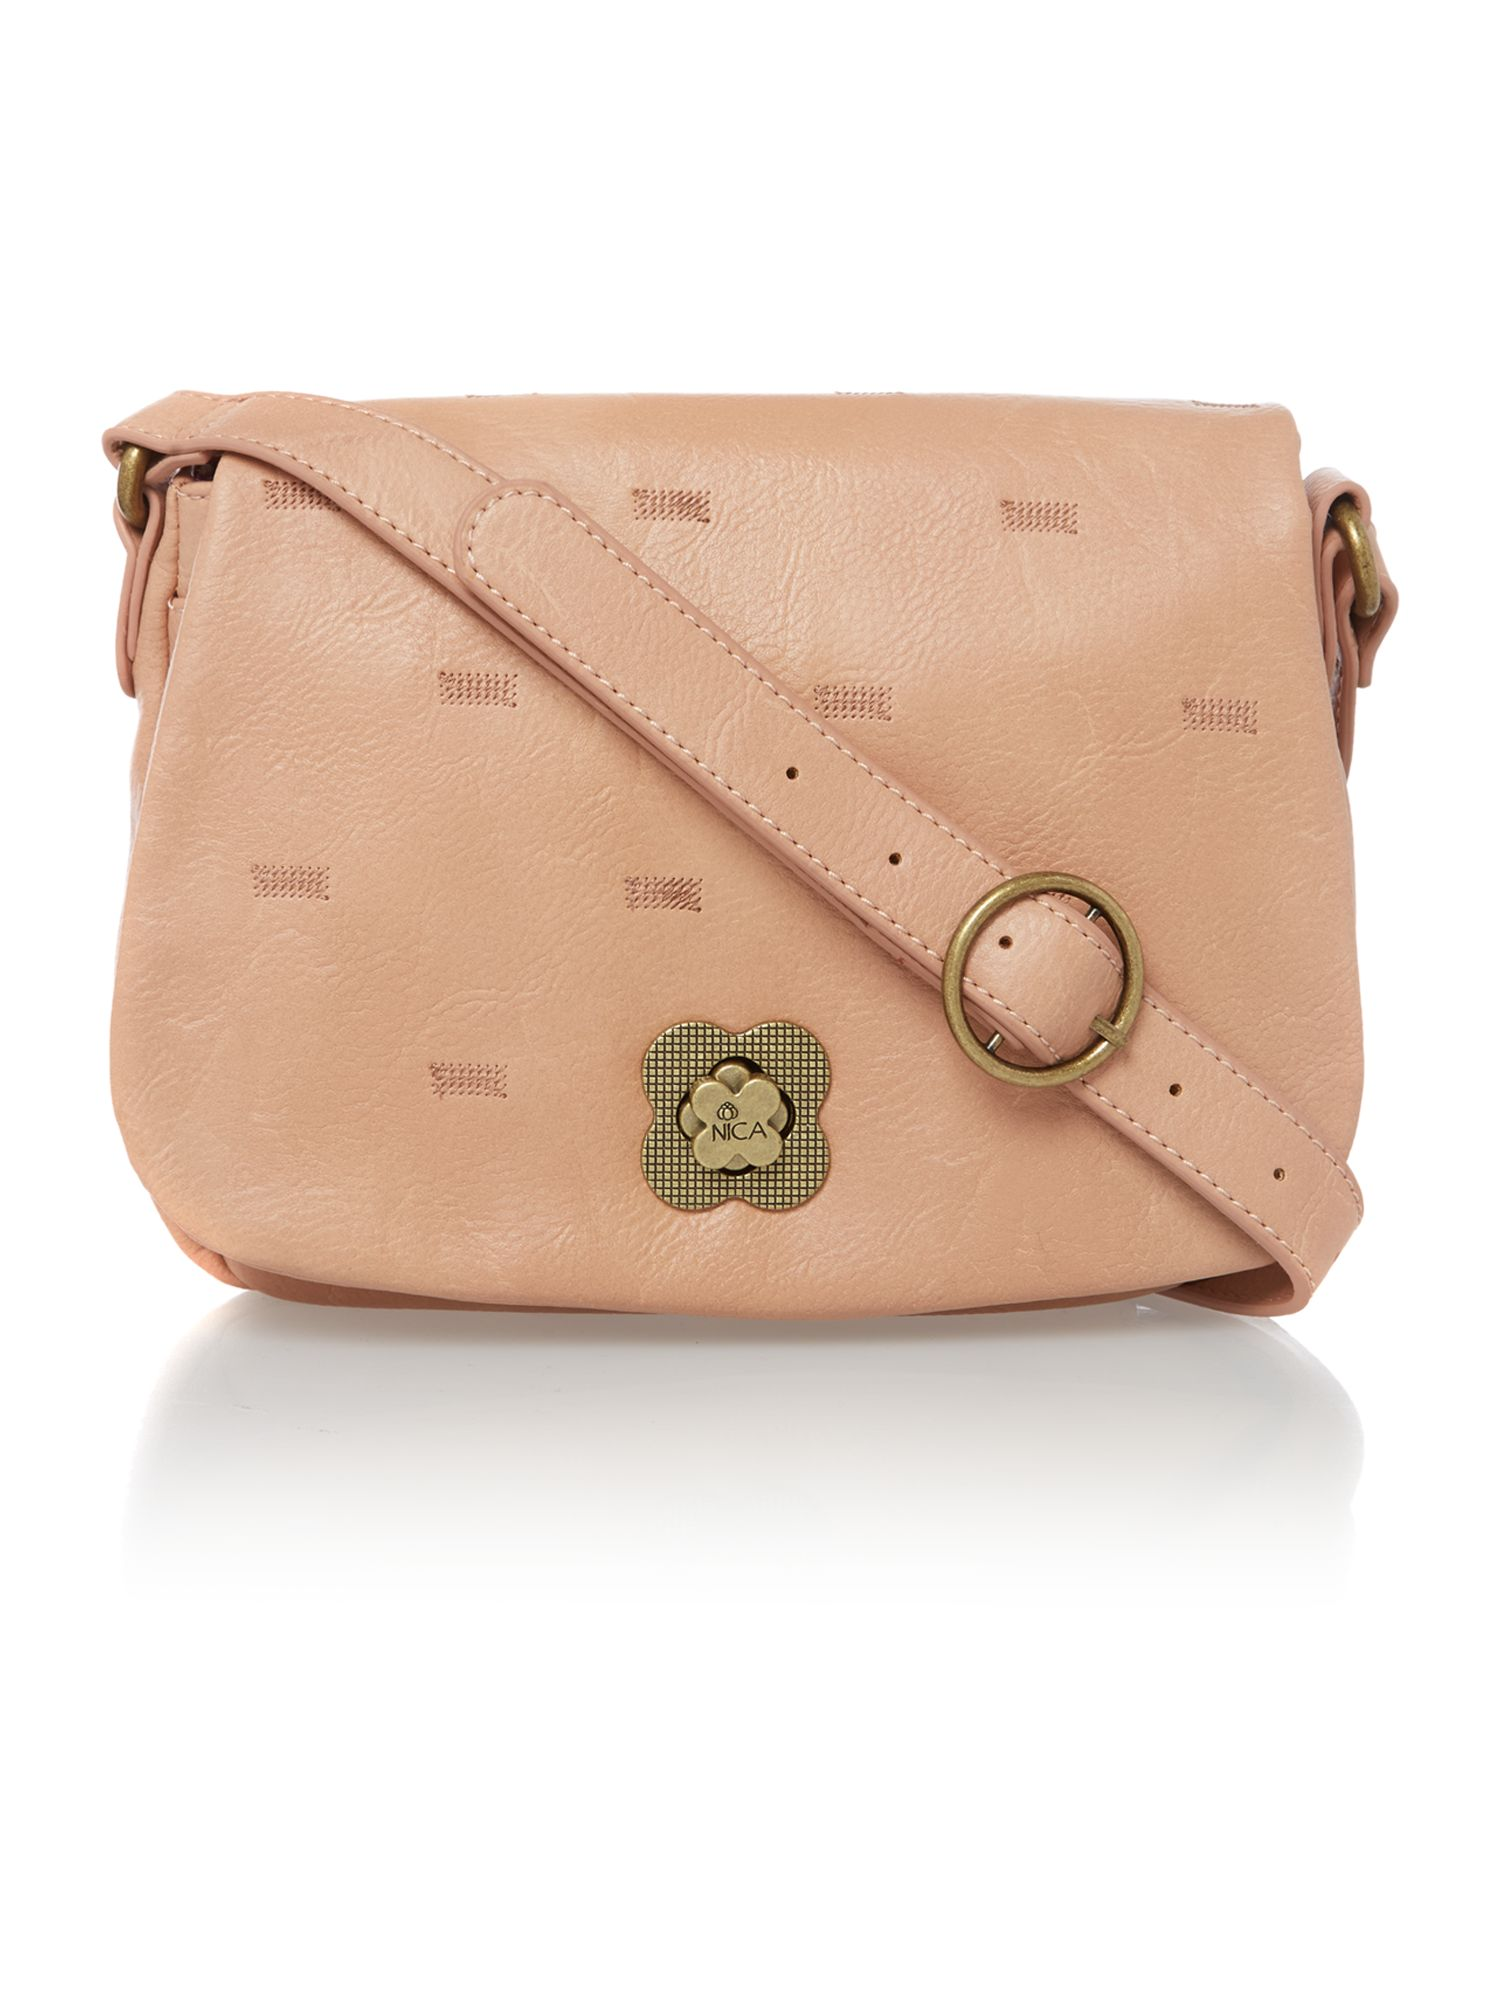 Lulu pink cross body bag